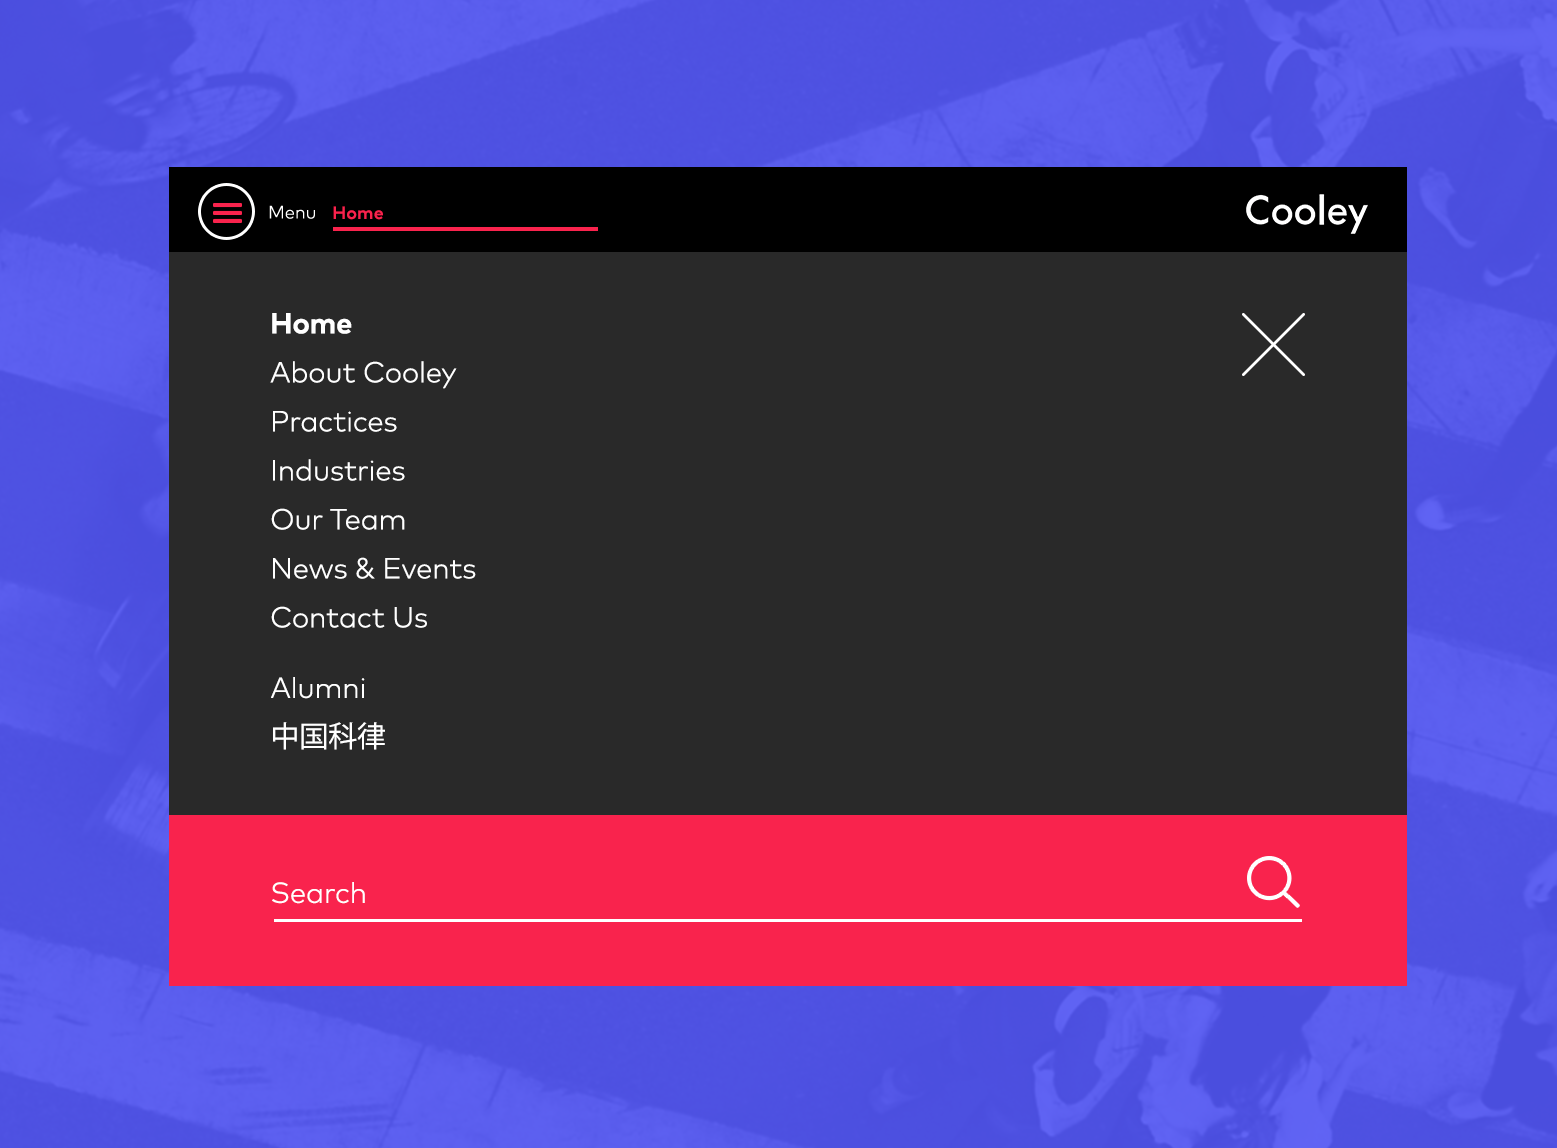 cooley_home_concept01_menu.png